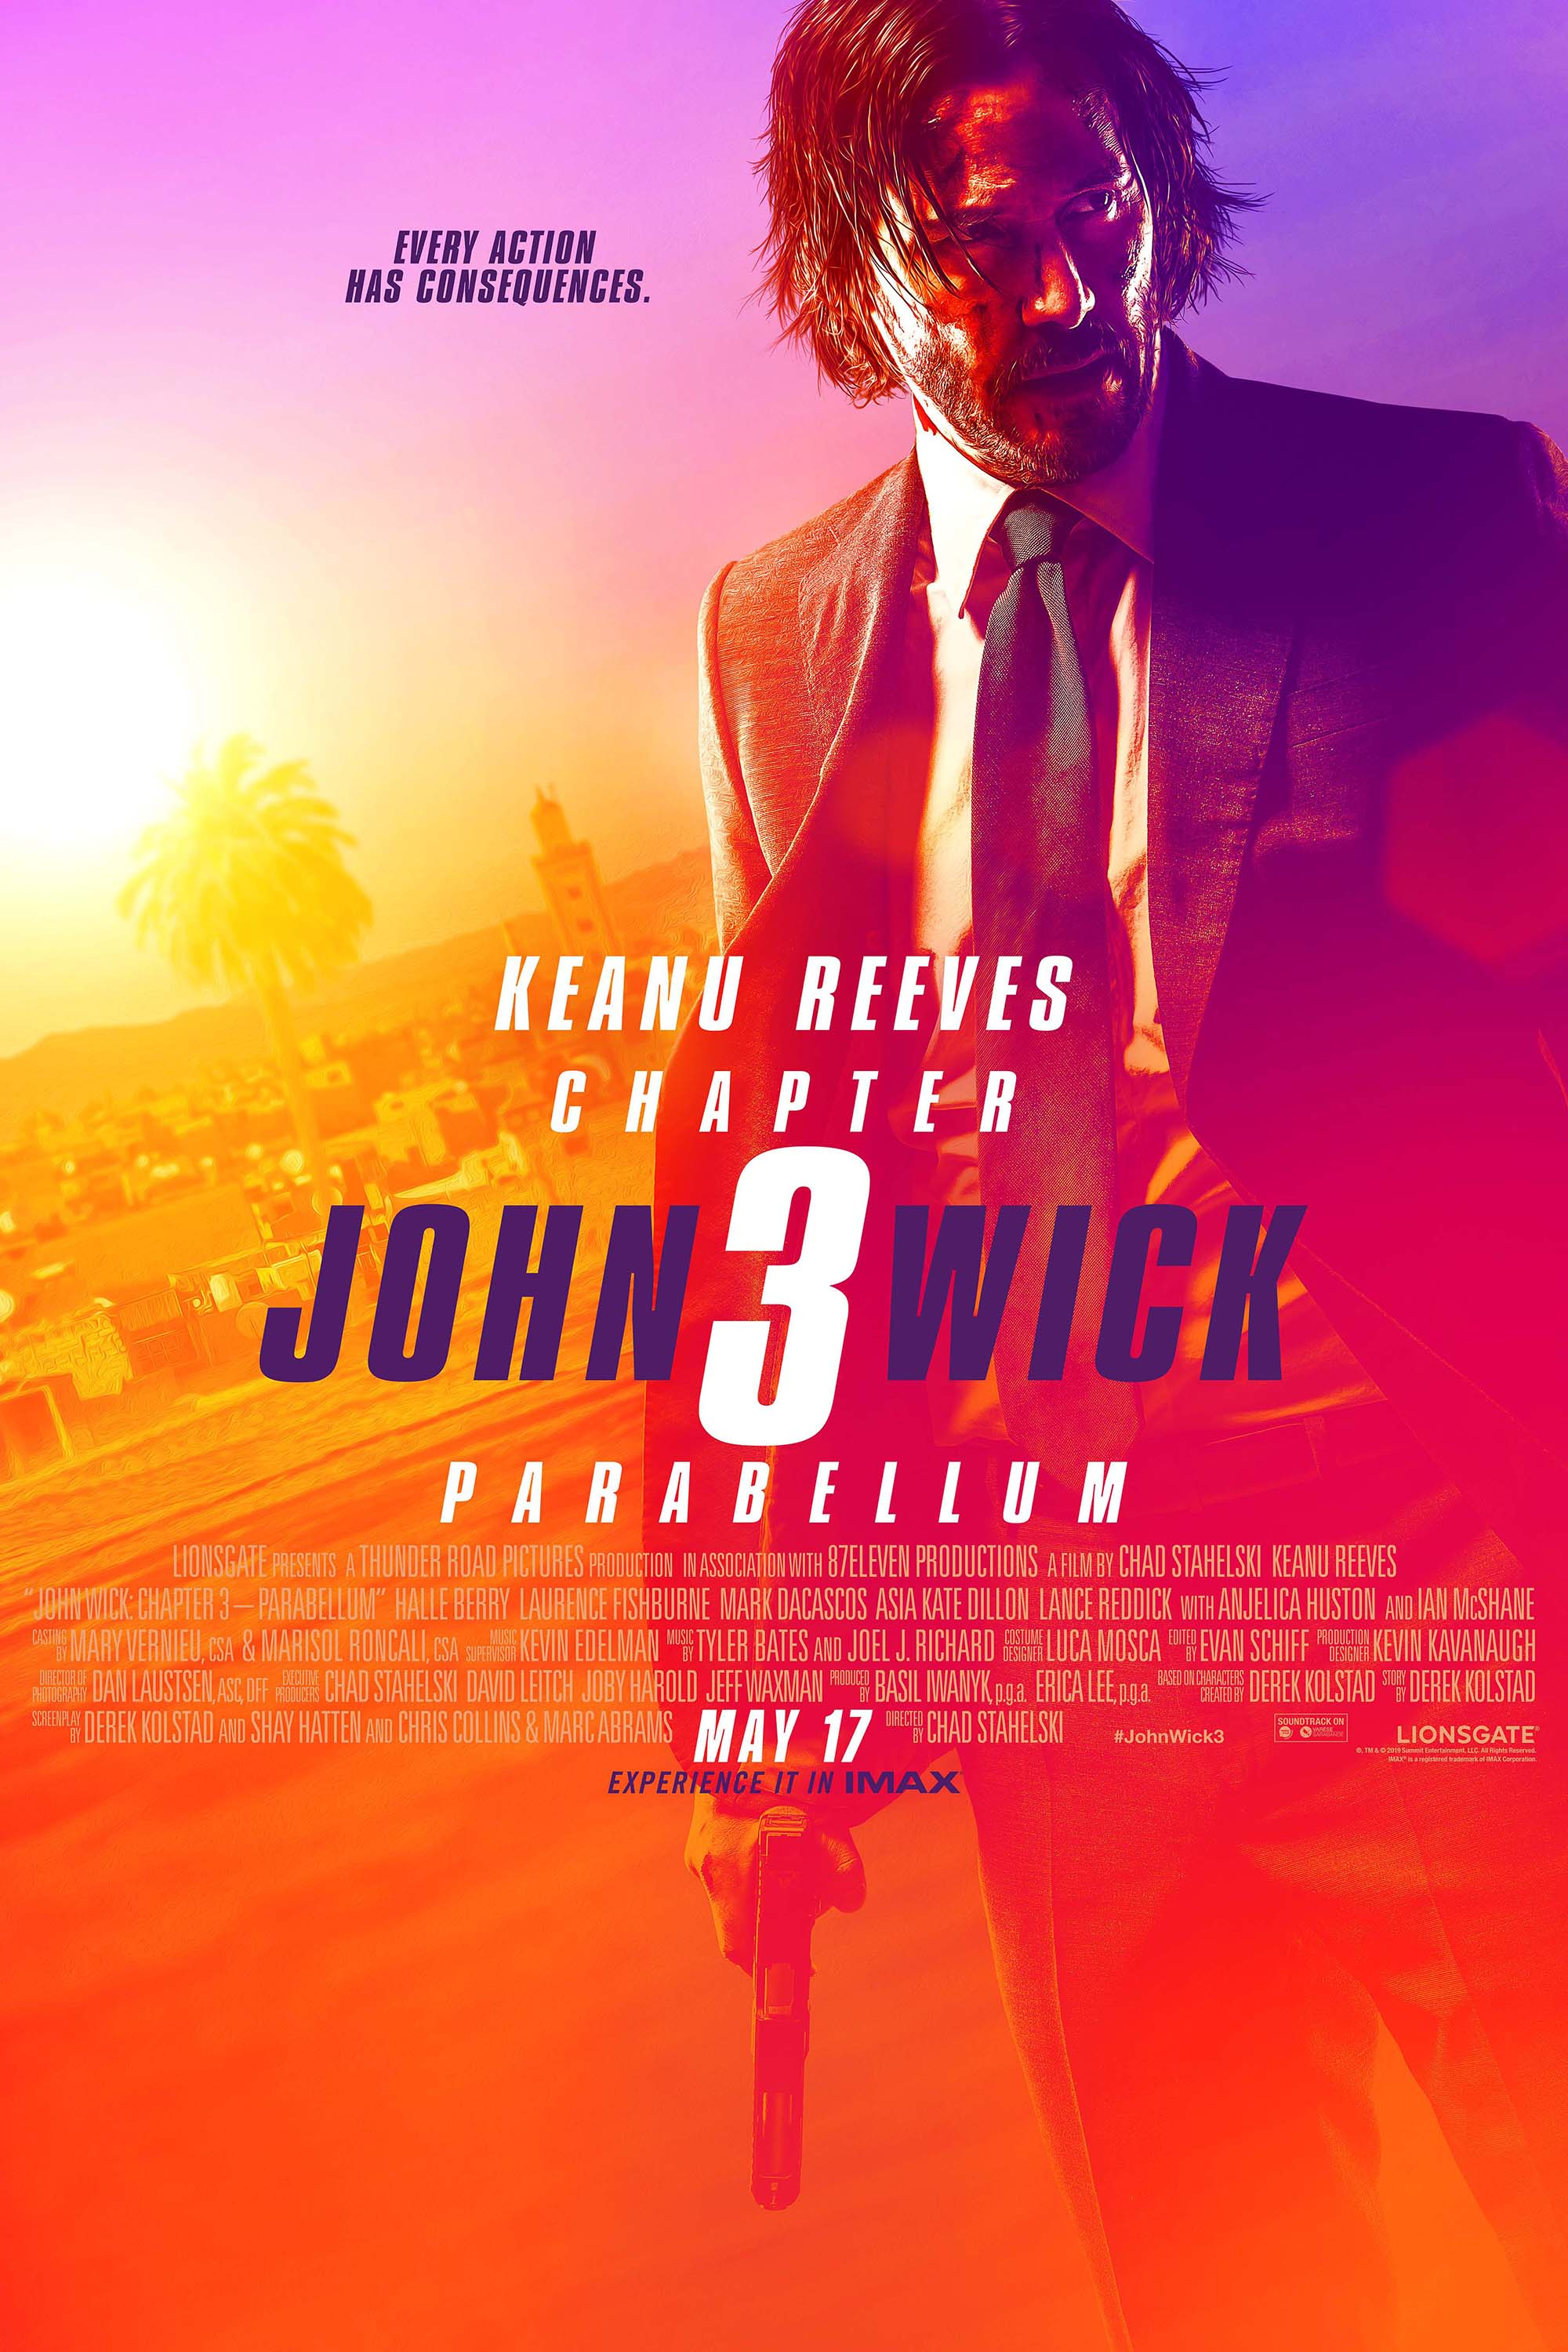 Poster for John Wick: Chapter 3 - Parabellum